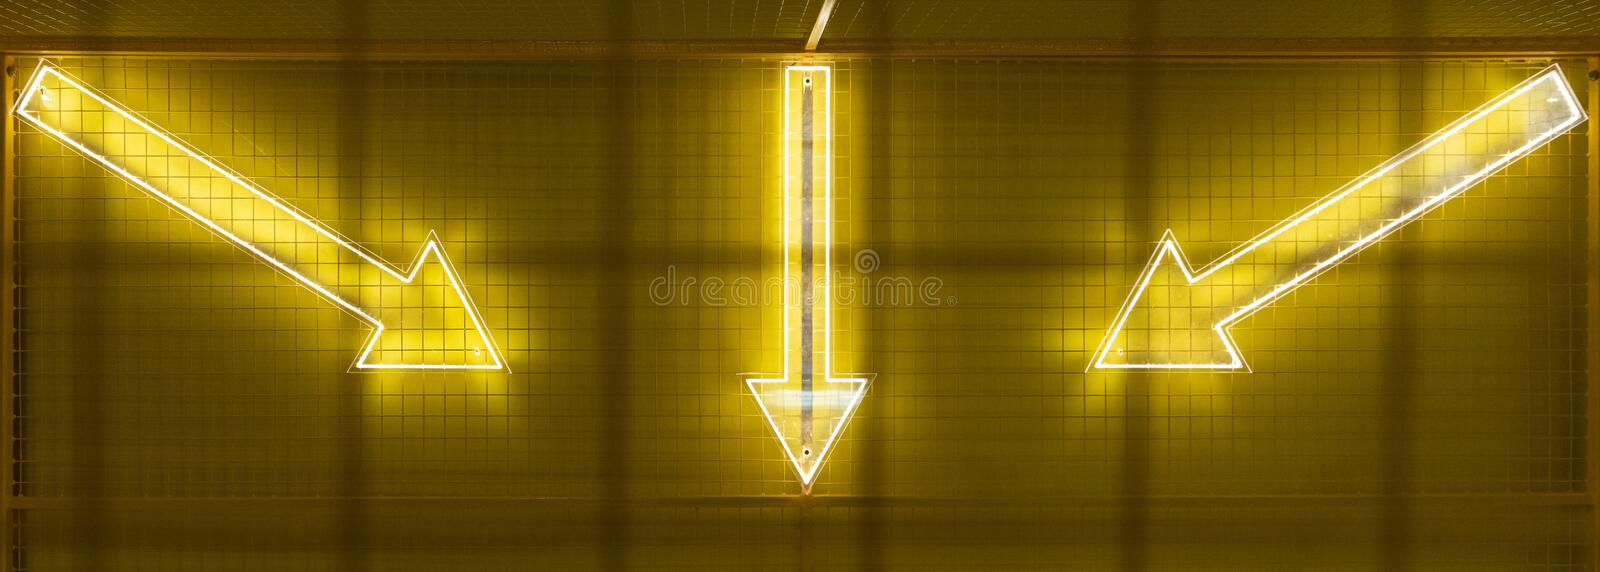 Dots matrix led diplay panel with illuminated symbol of arrow. Background, dark, decoration, pattern, sign, yellow, abstract, design, electric, icon, light royalty free stock photo